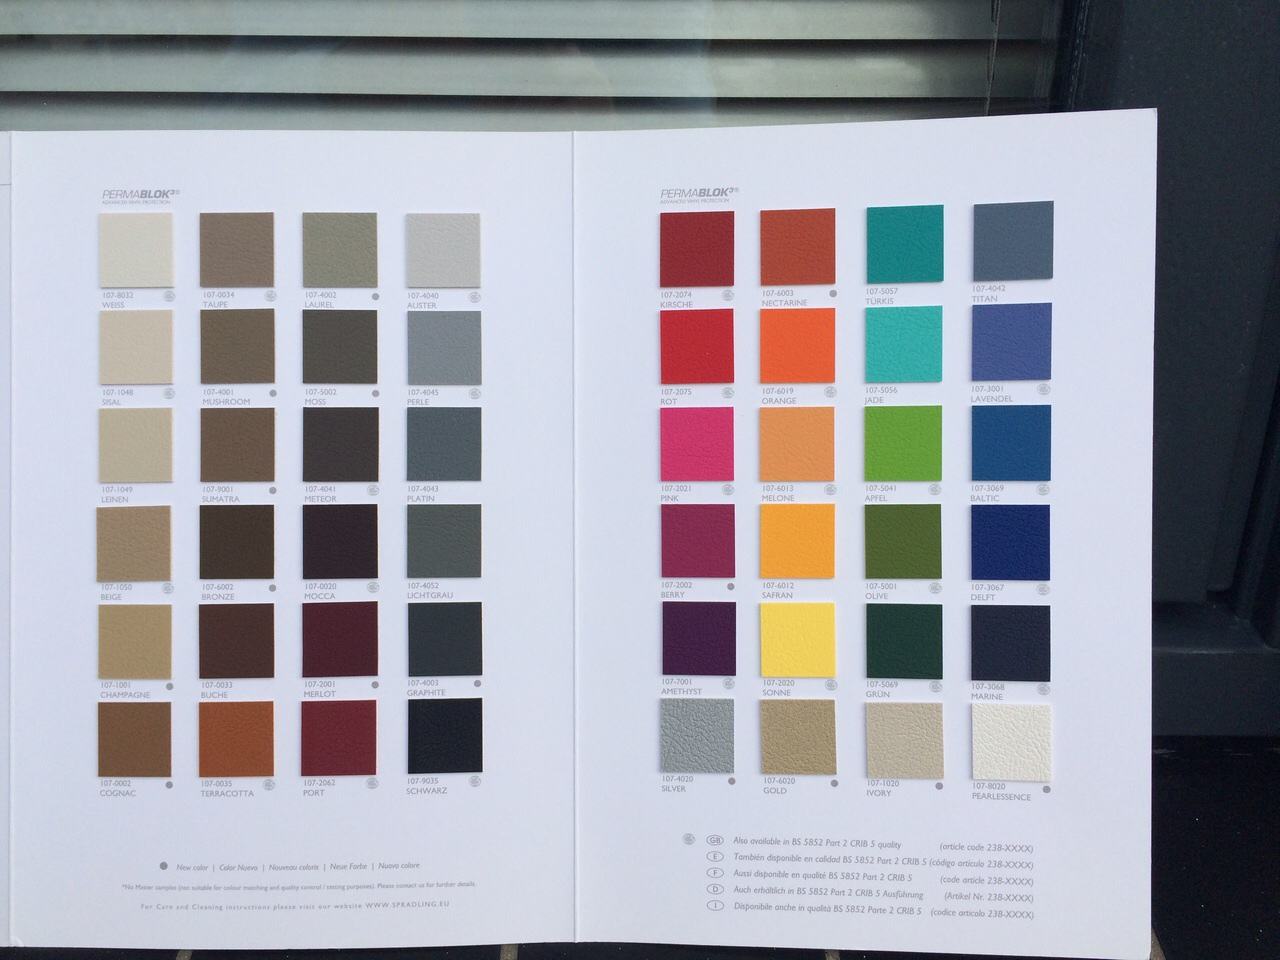 Bqergonomics Color Charts